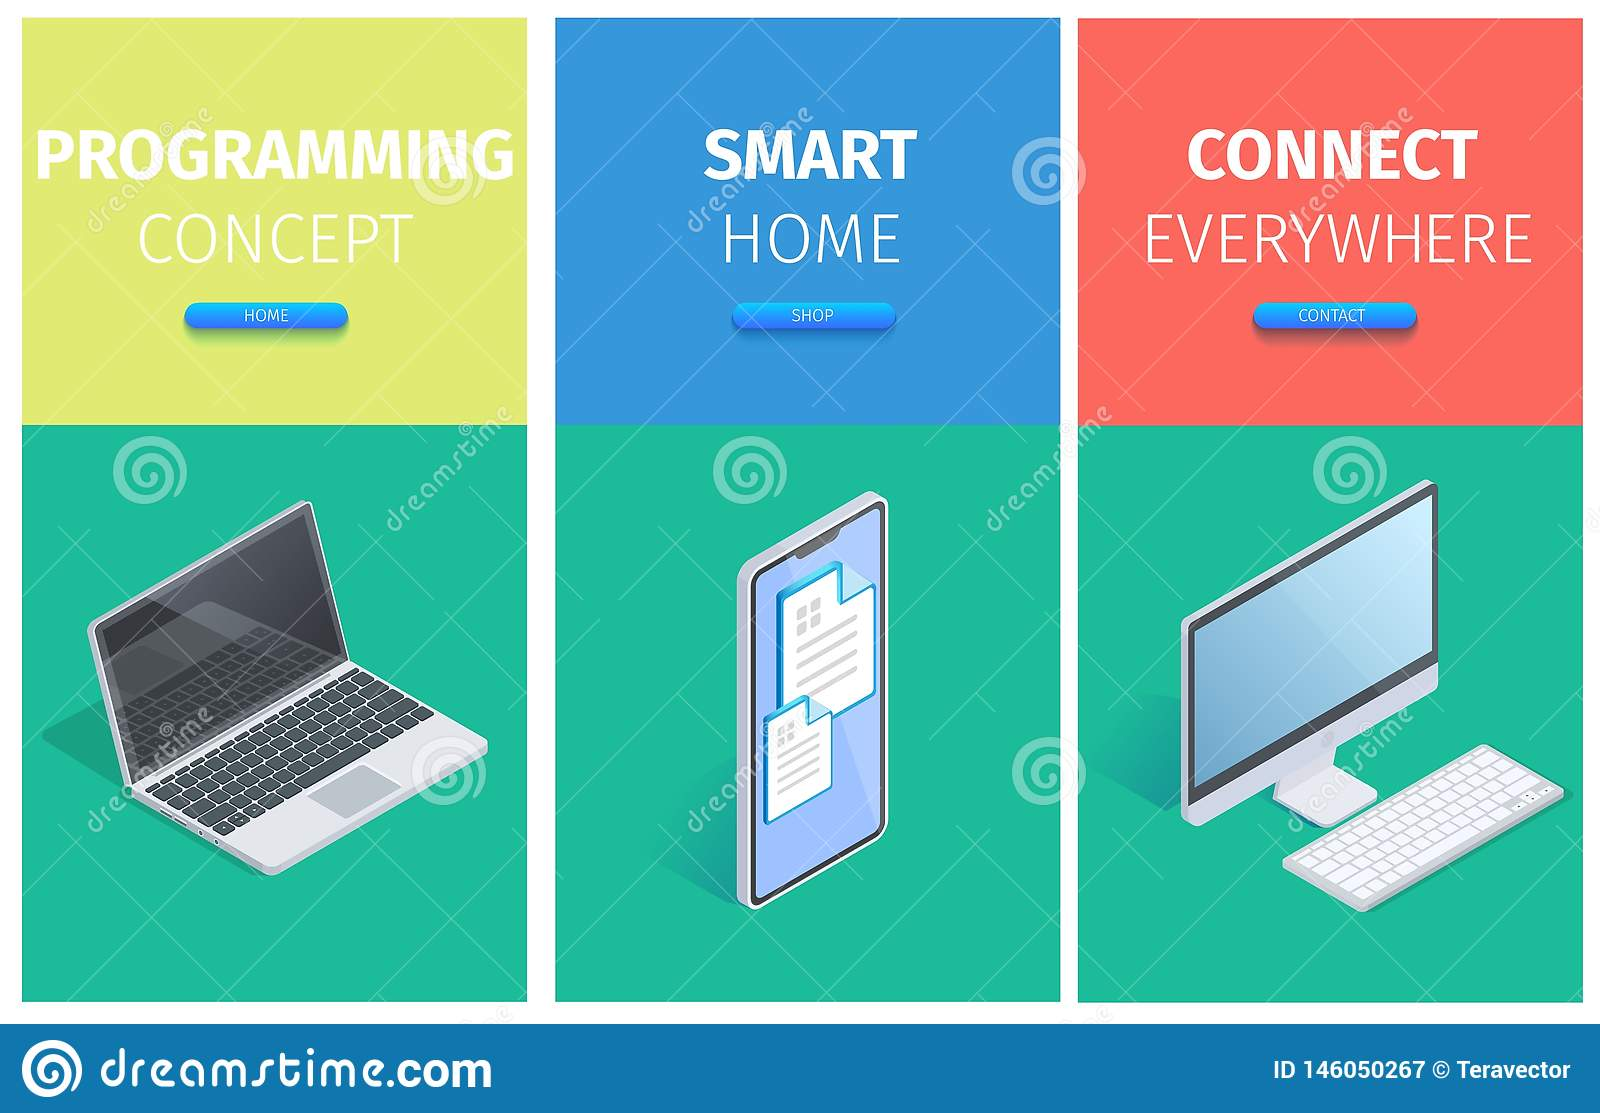 Programming Concept, Smart Home, Connect Banners